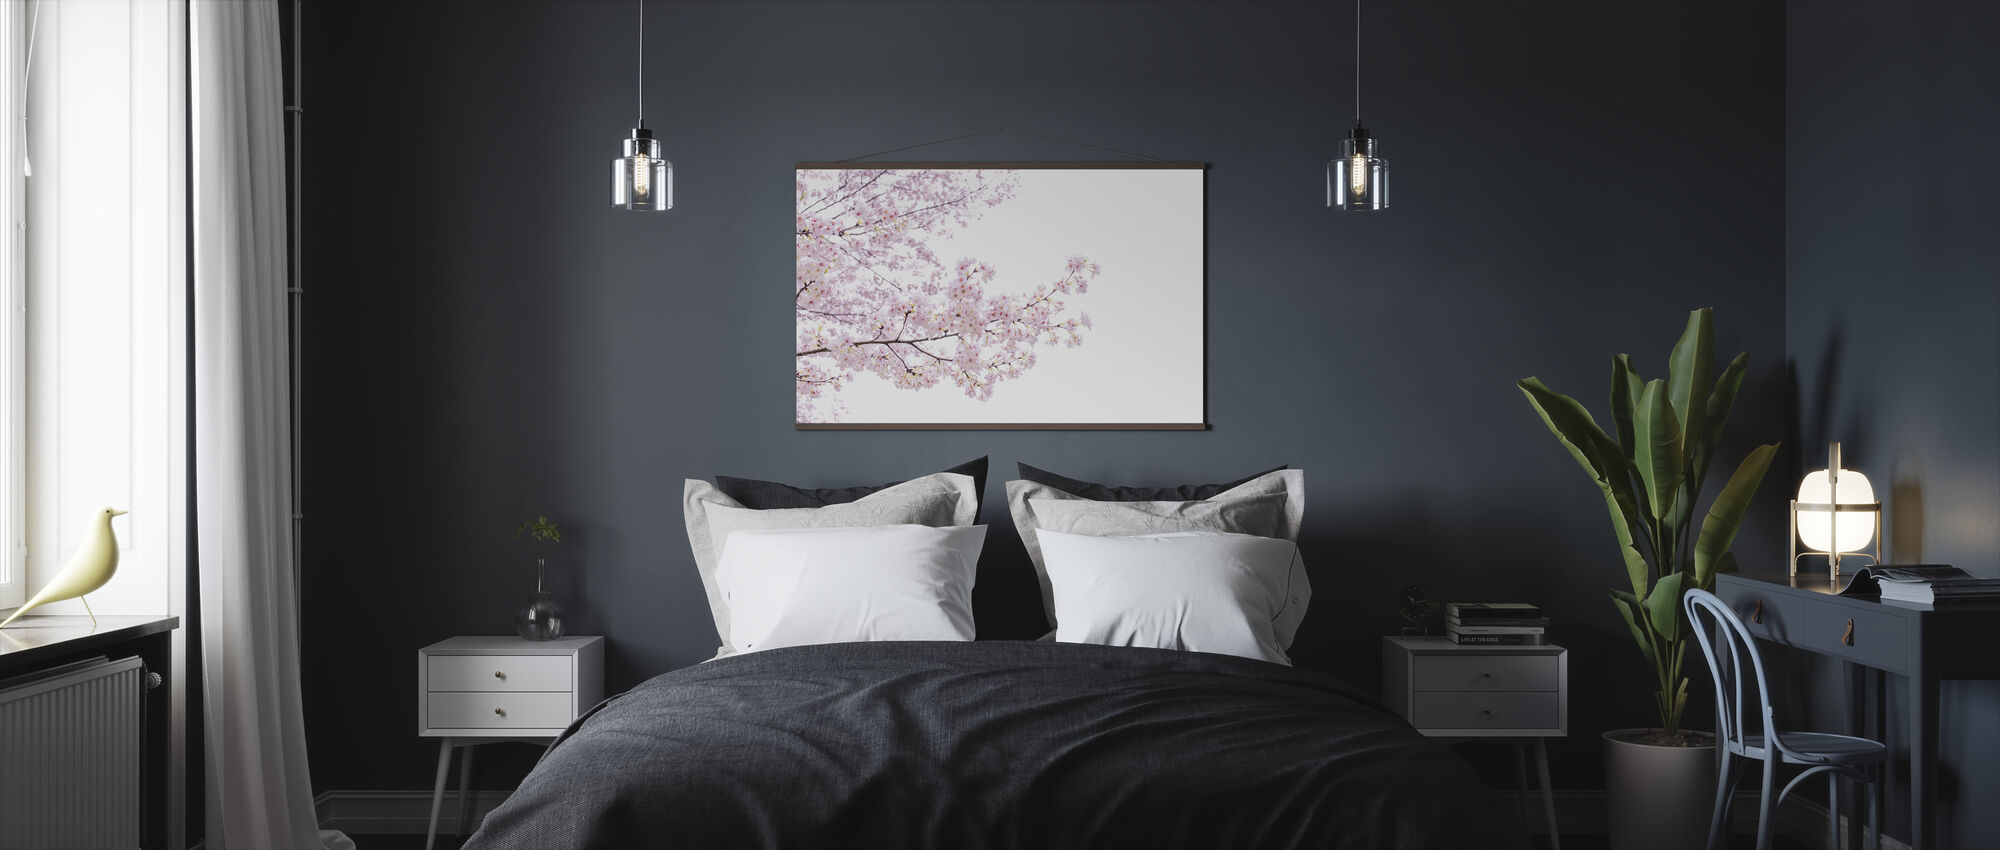 Divine Cherry Blossoms - Poster - Bedroom